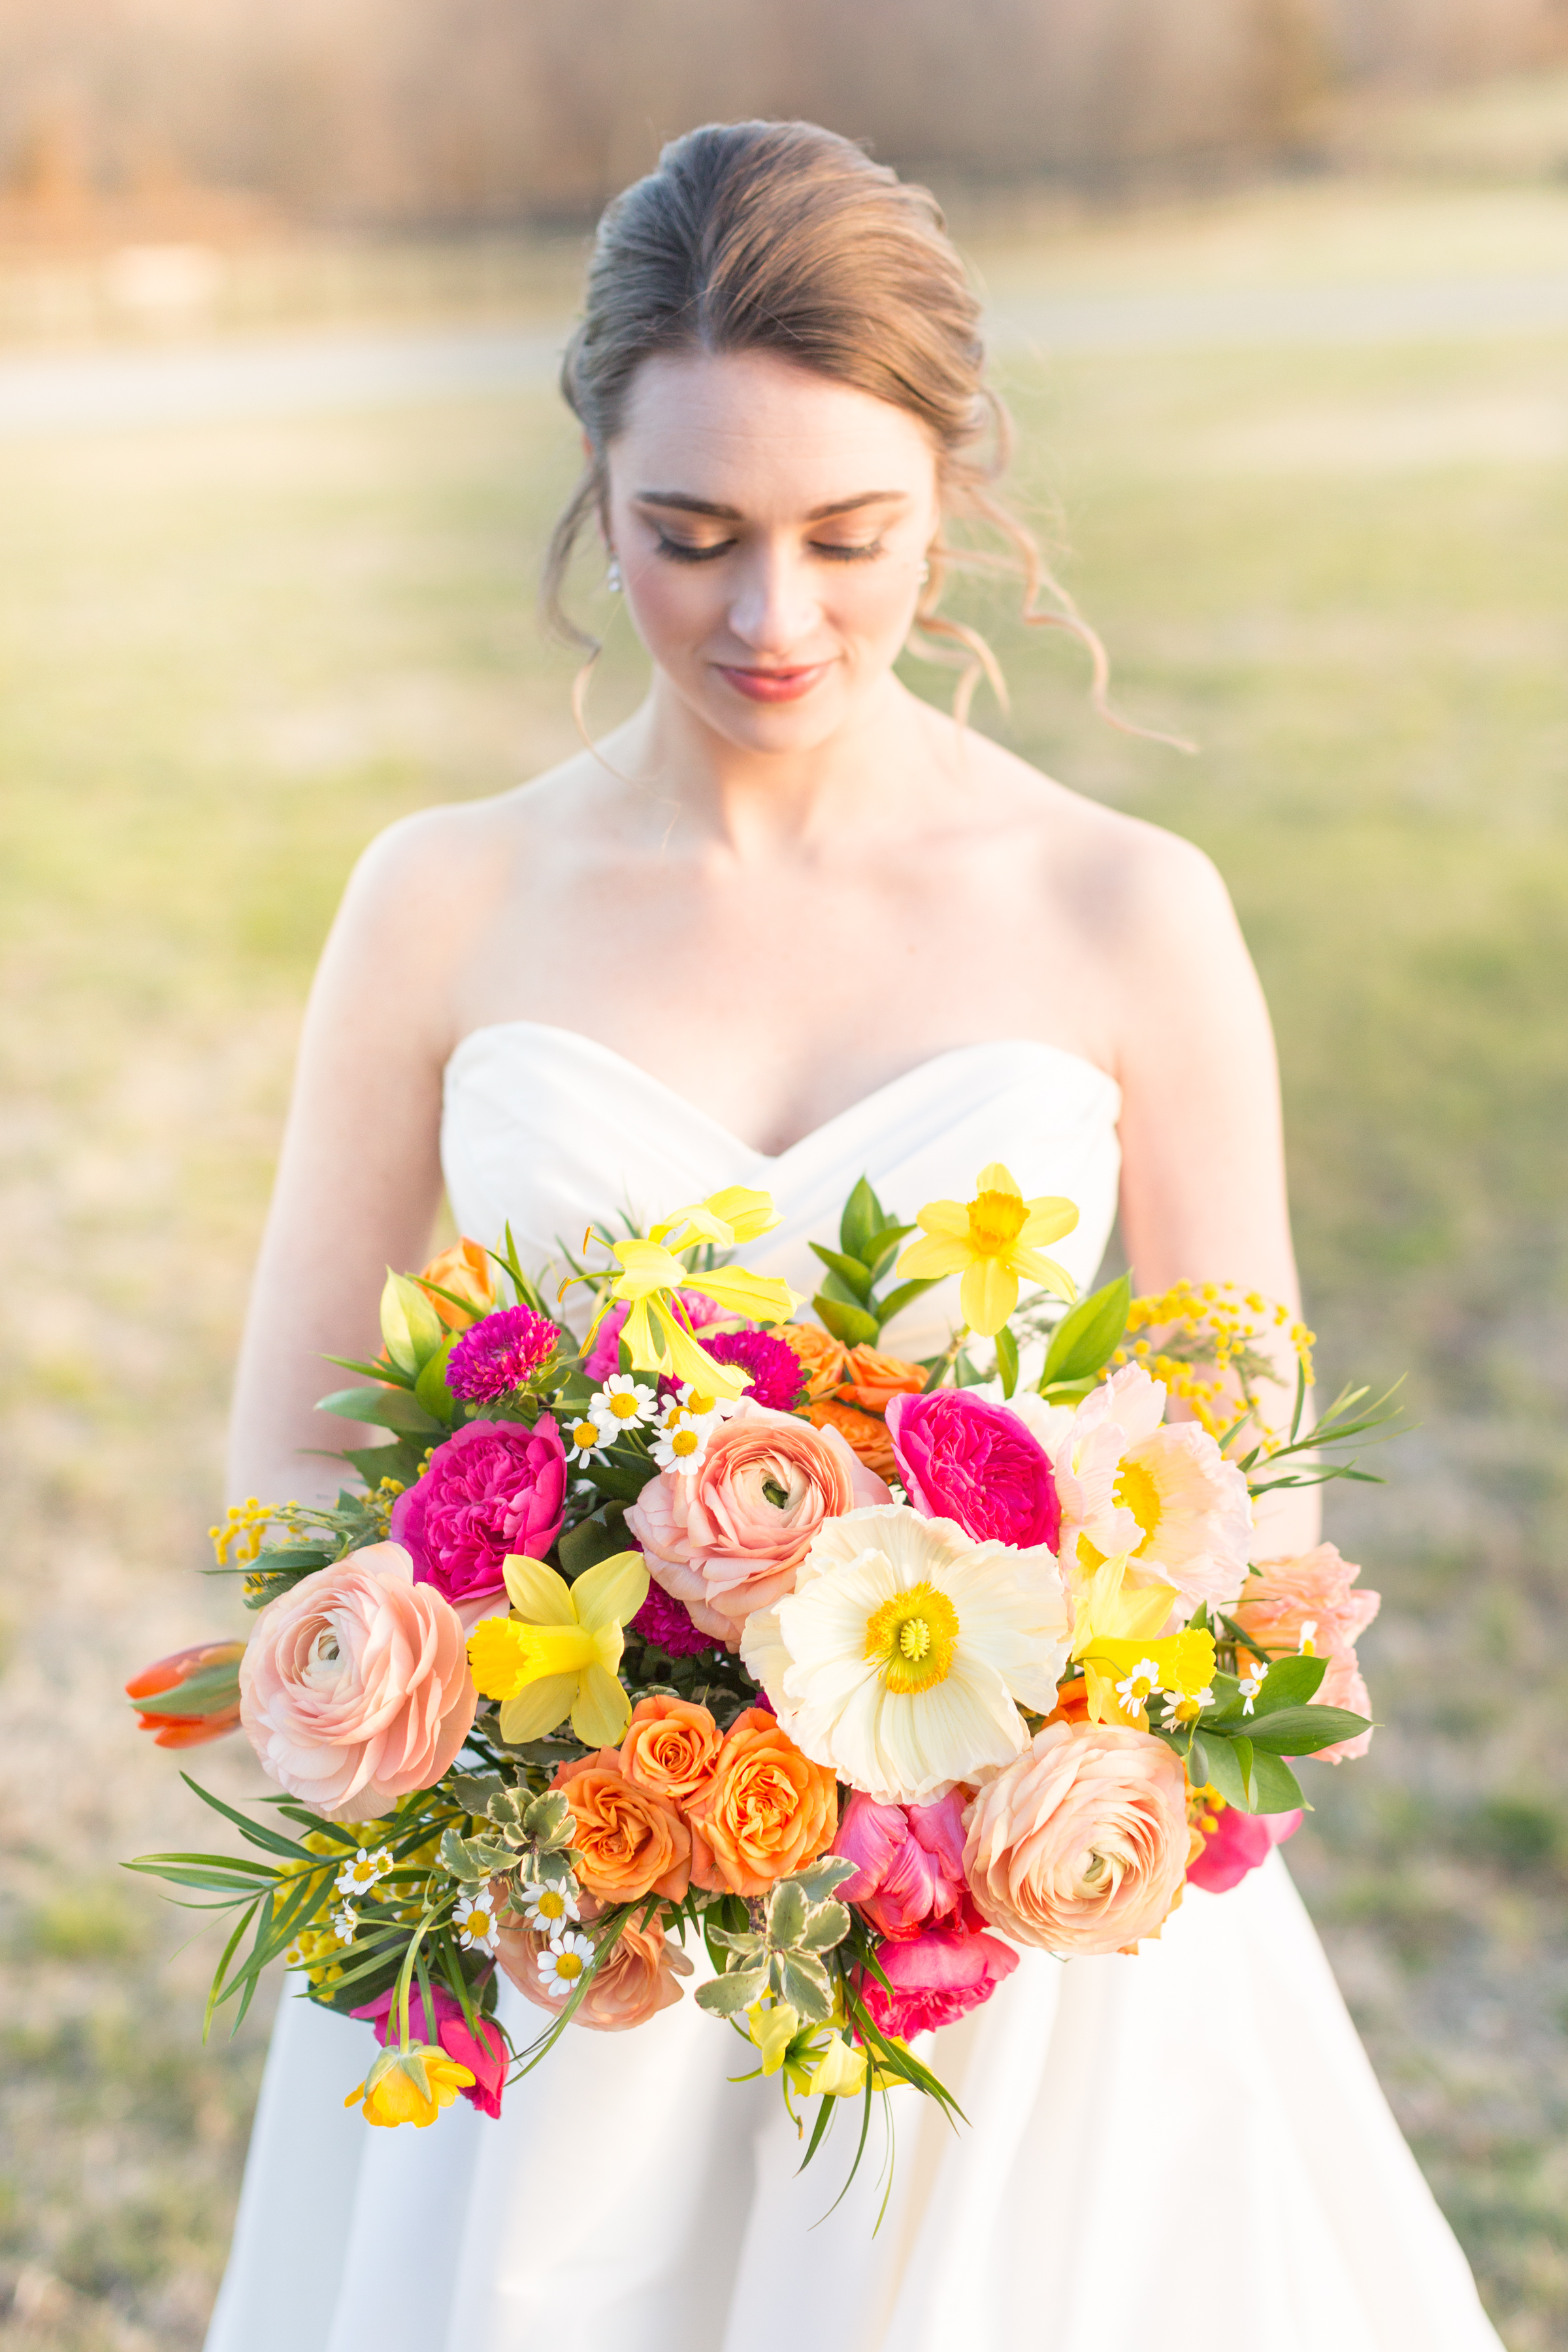 Spring bridal bouquet of daffodil, ranunculus, garden rose, tulips, gloriosa lily, mimosa